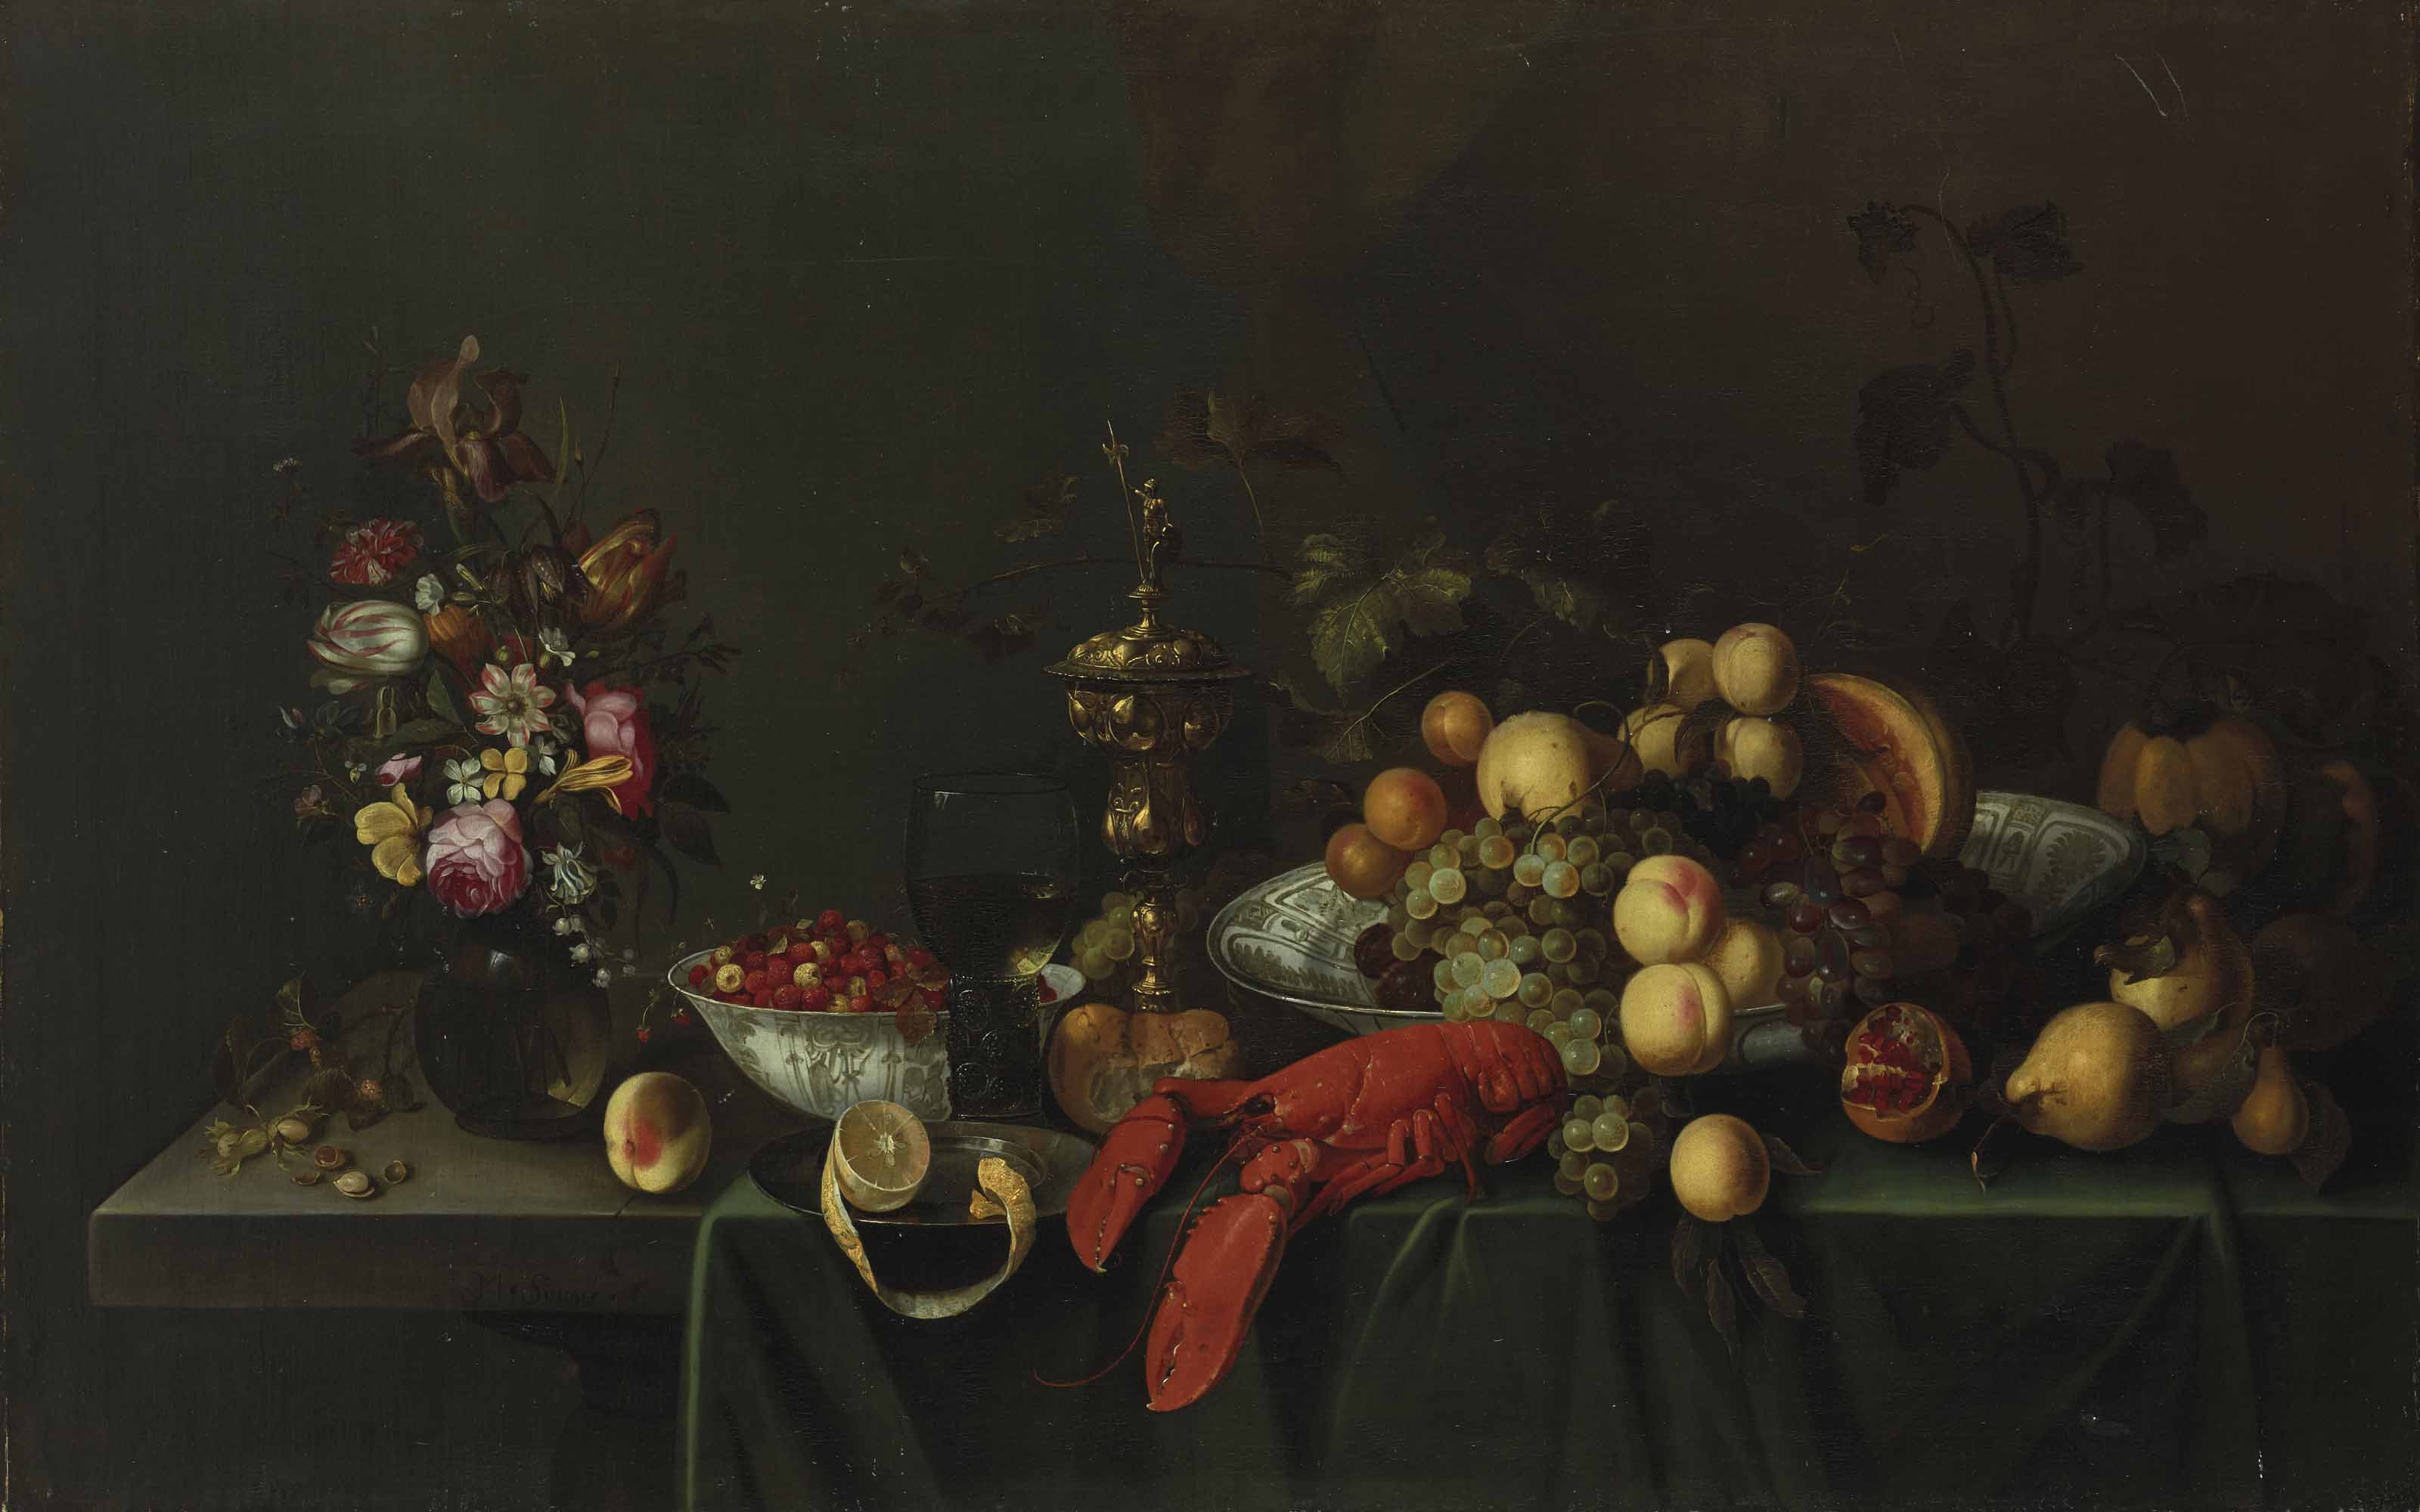 Still life with flowers, fruits and lobster